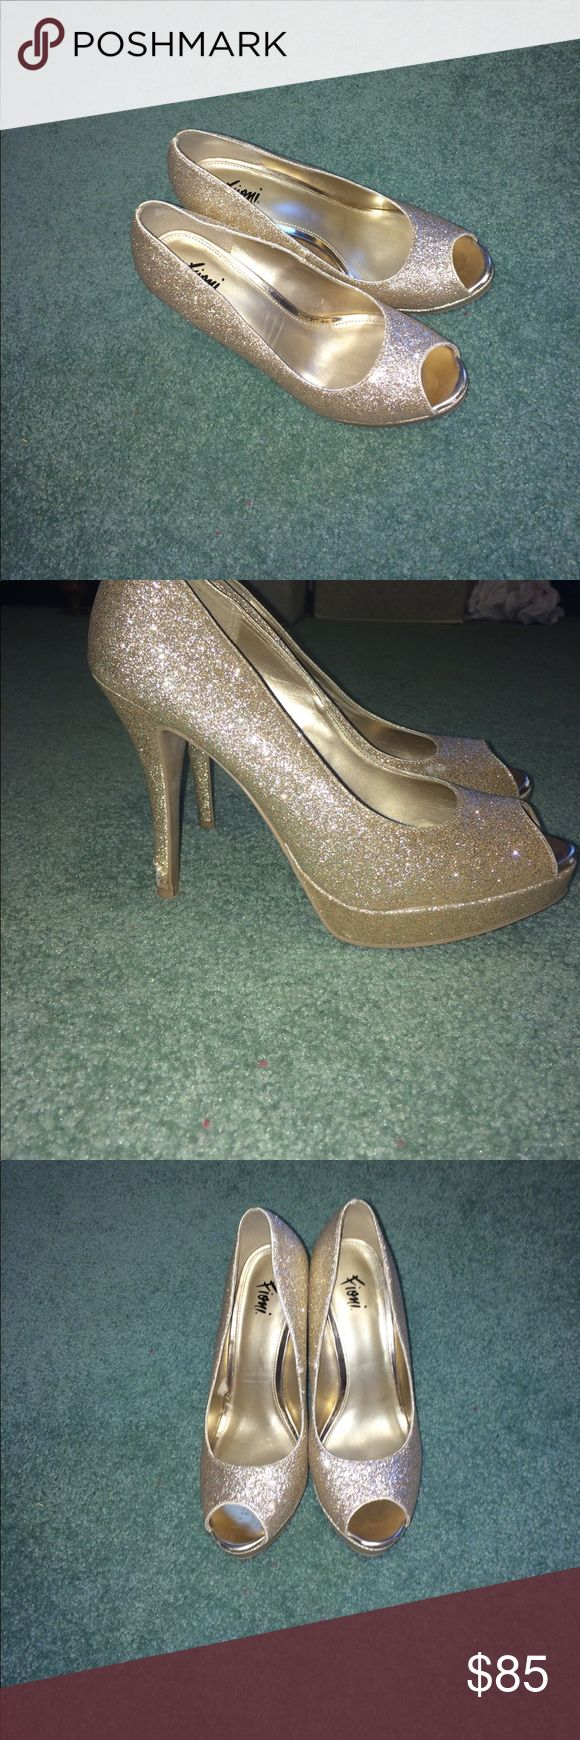 Gold Sparkly High Heels Bought these heels for prom, they have been worn 3 times. They are in great condition but there is a small piece of the heel that rubbed off (as pictured) when I accidentally scraped in on concrete. They are size 8 MAJOR PRICE DROP!!! Shoes Heels